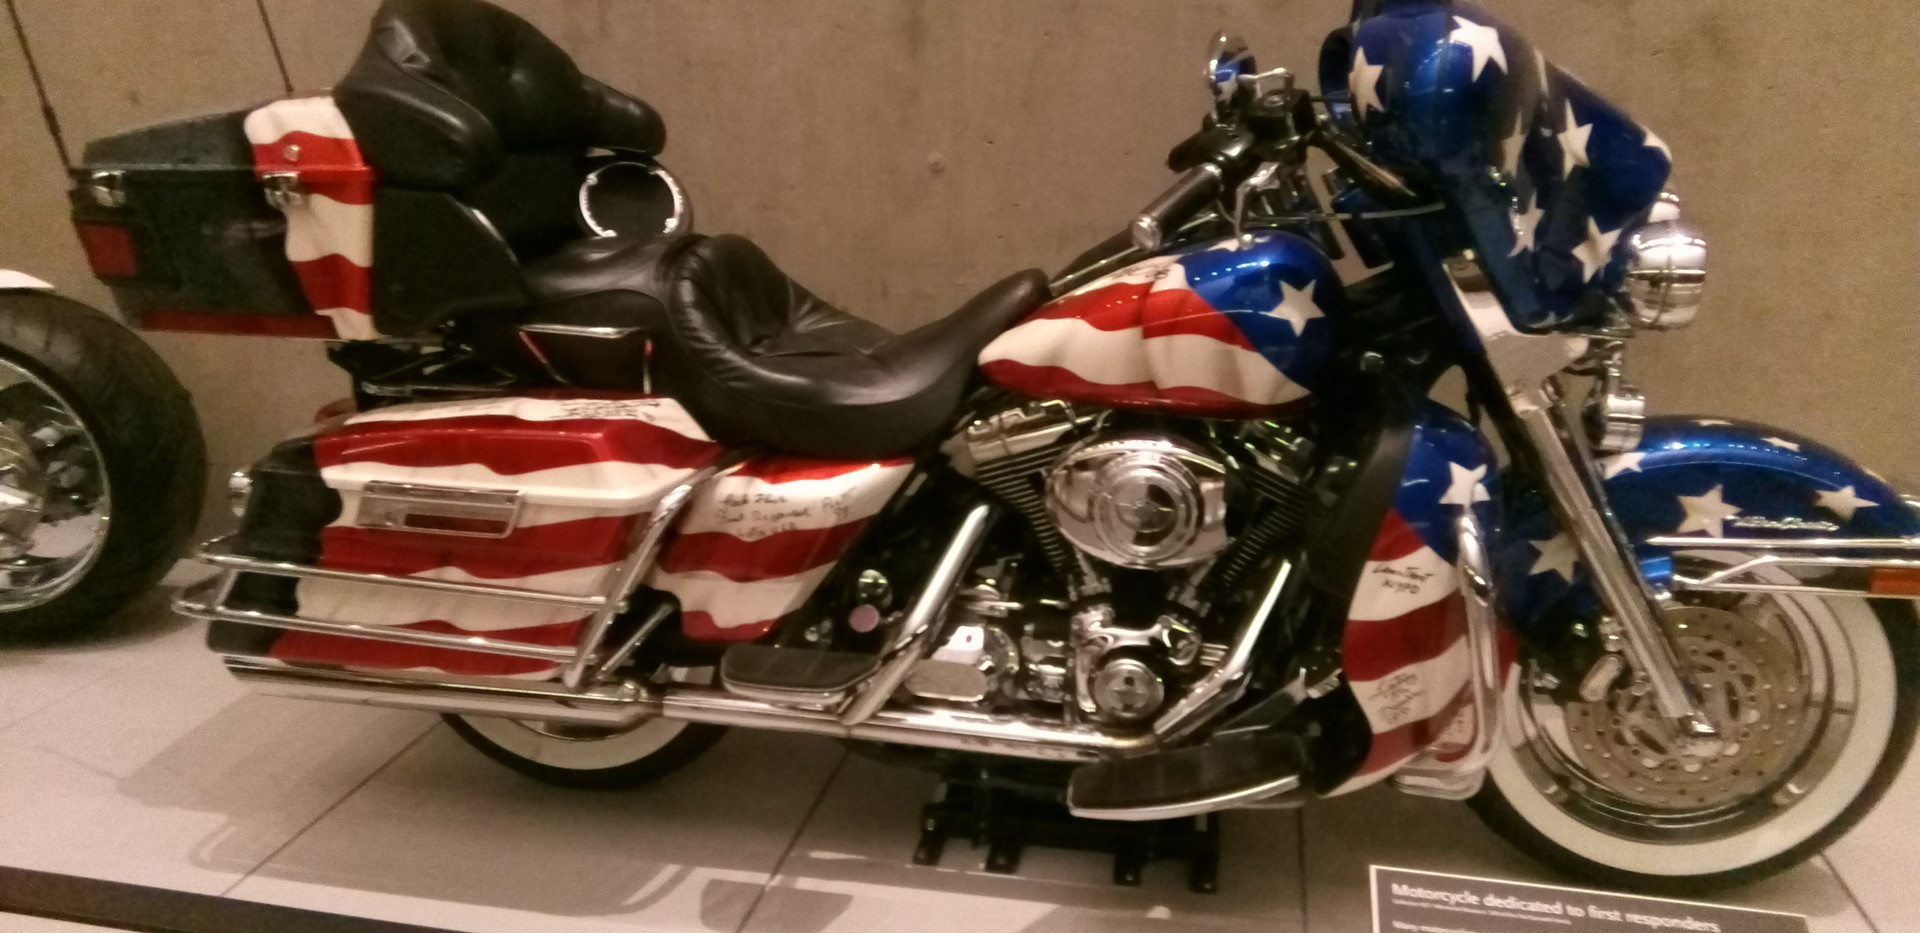 First responders can by Motercycle.